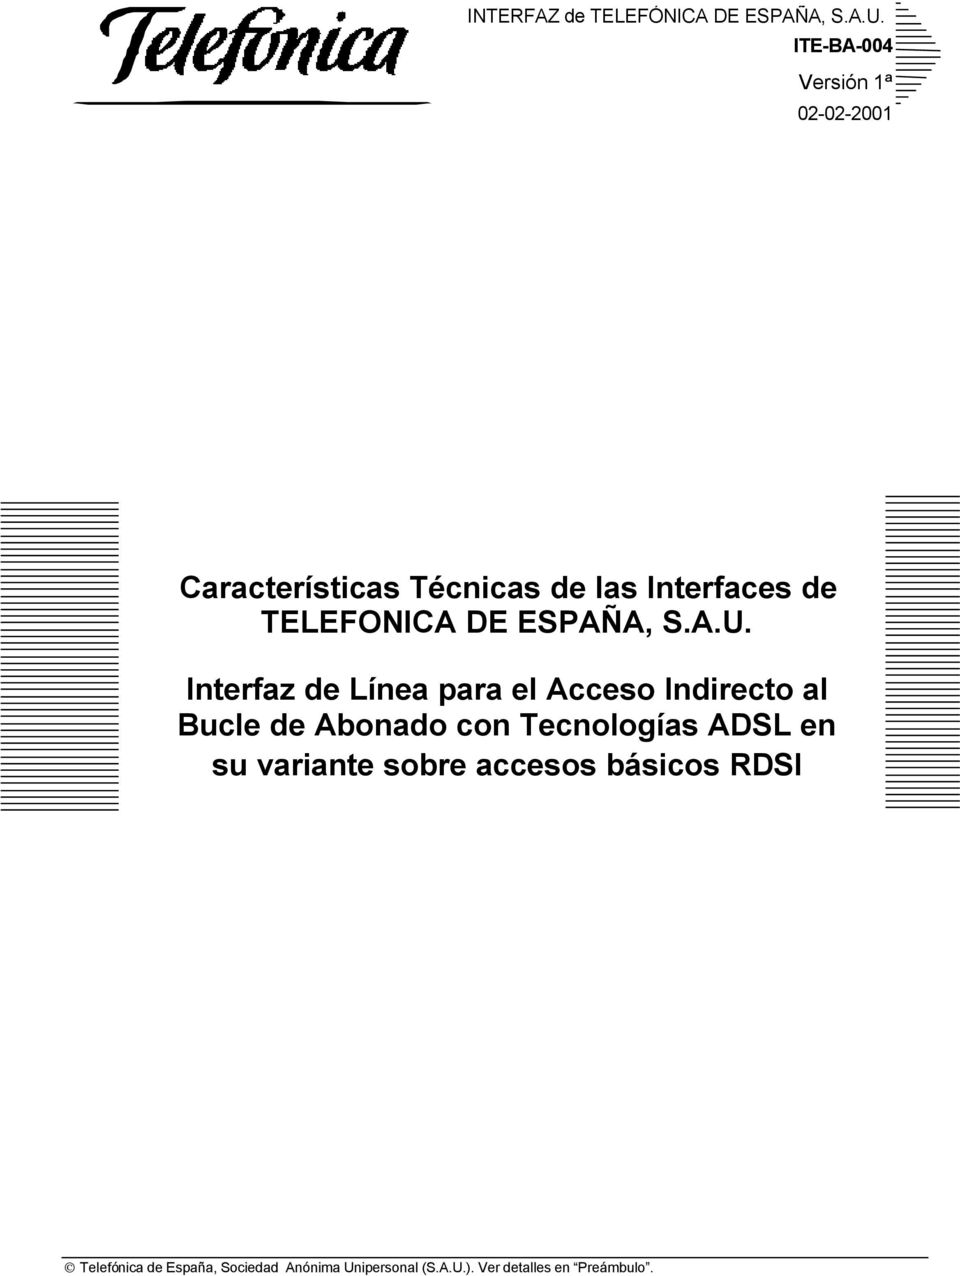 las Interfaces de TELEFONICA DE ESPAÑA, S.A.U.